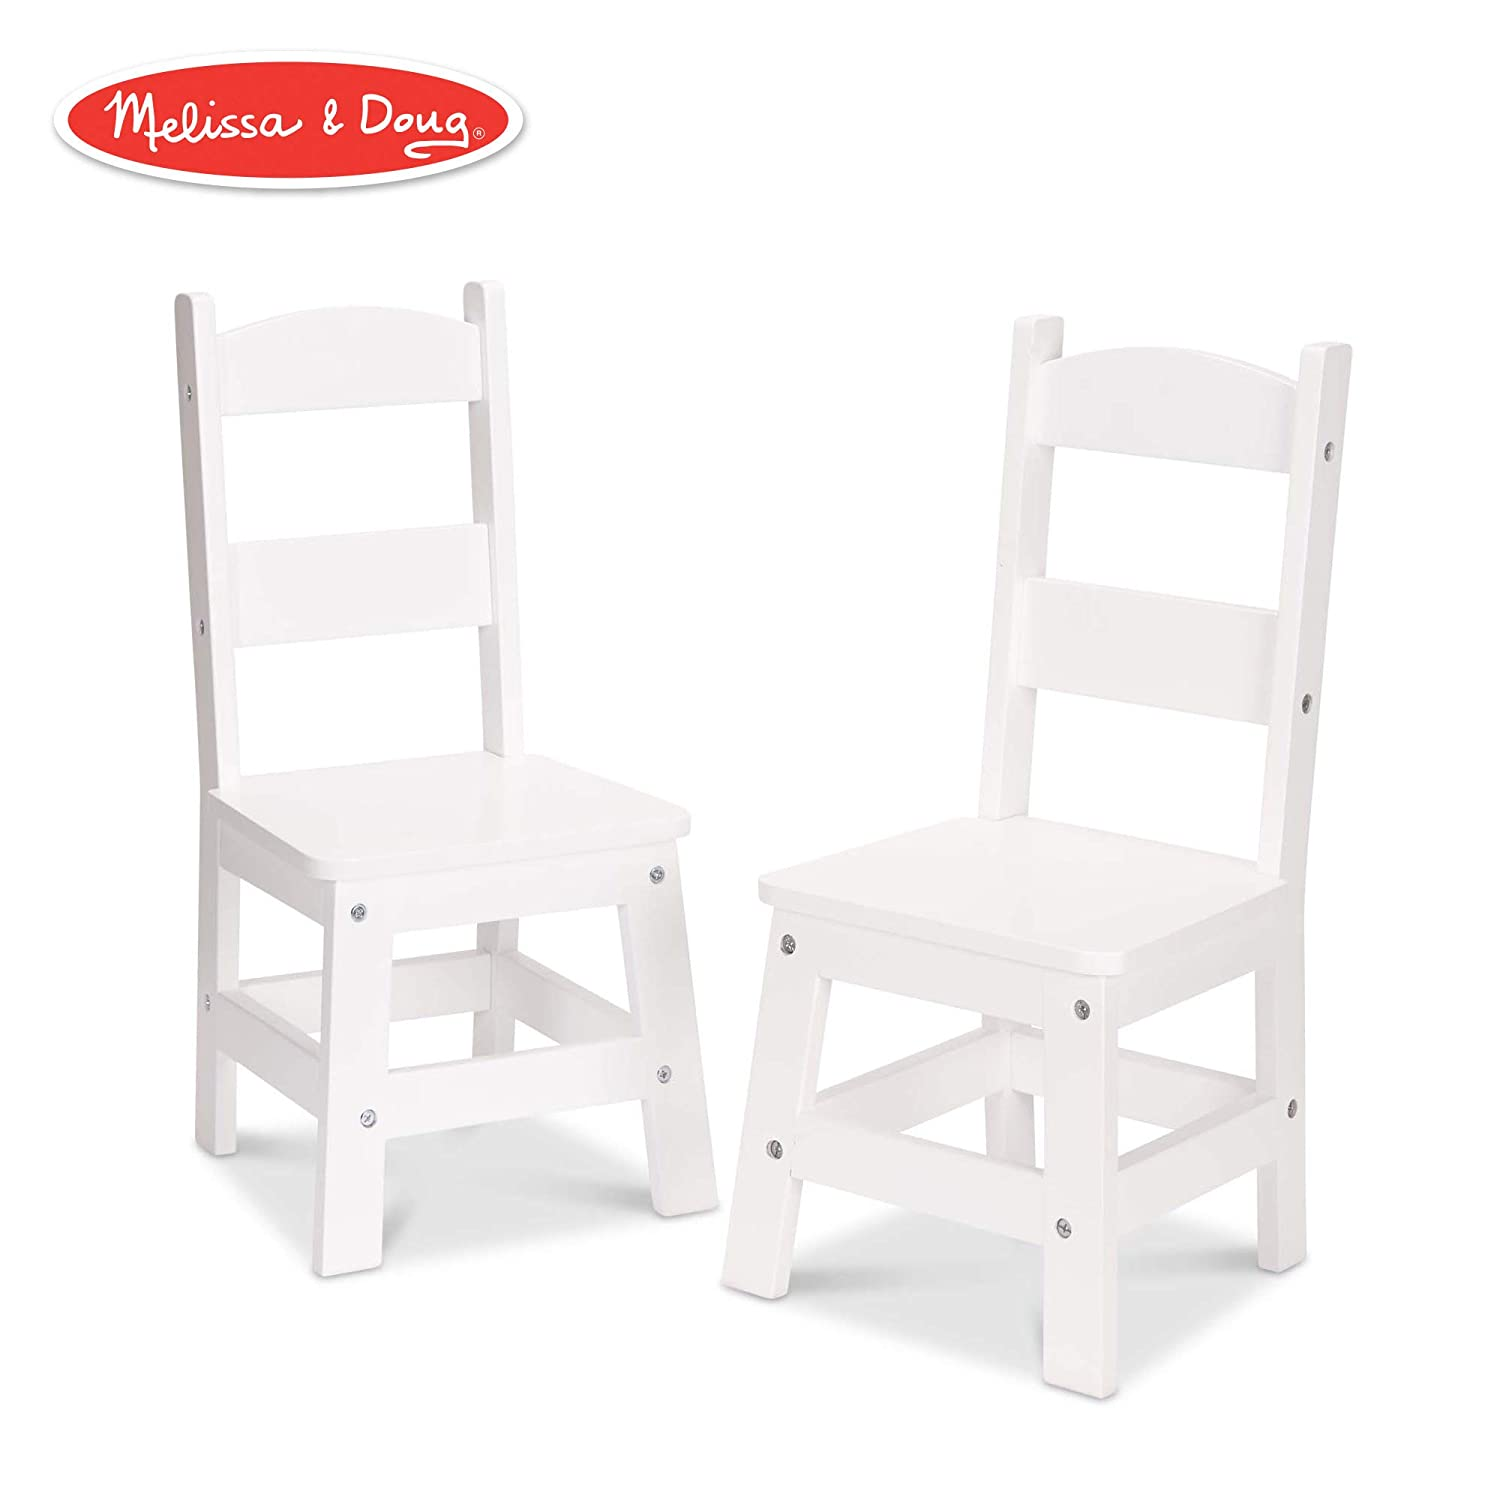 Melissa & Doug Wooden Chair Pair - White Children's Furniture